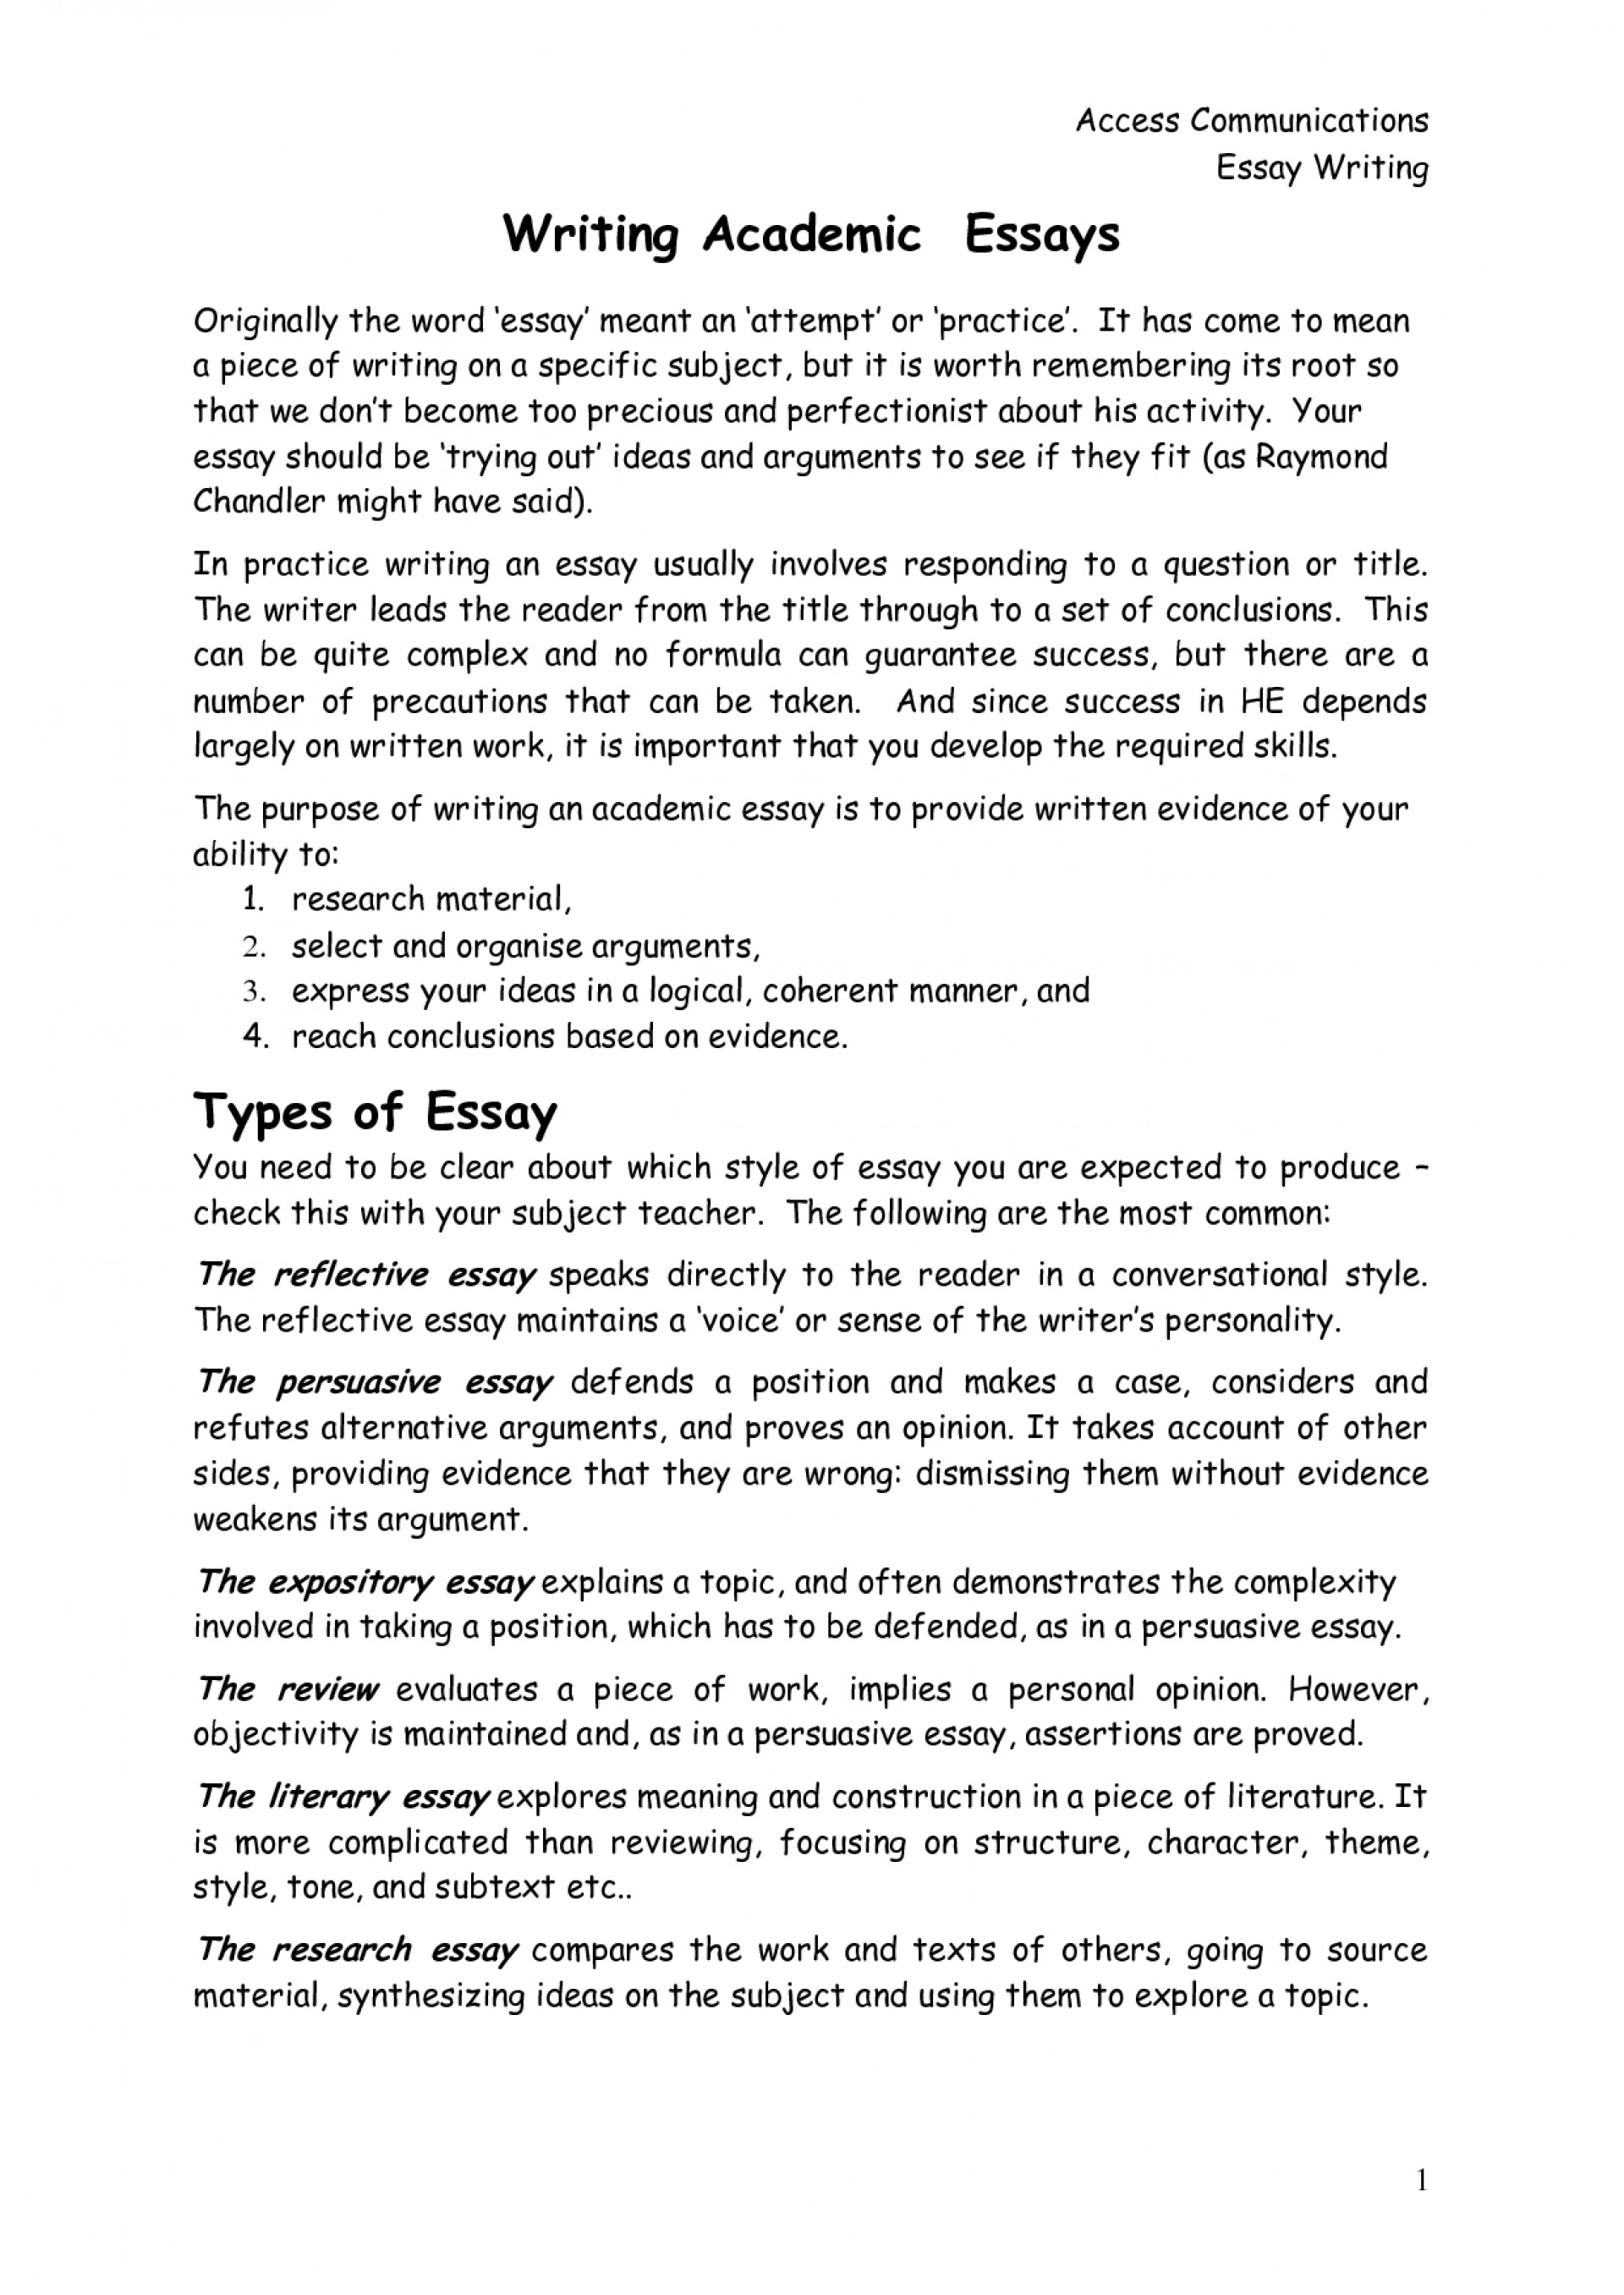 001 essay example what is good academic to write about